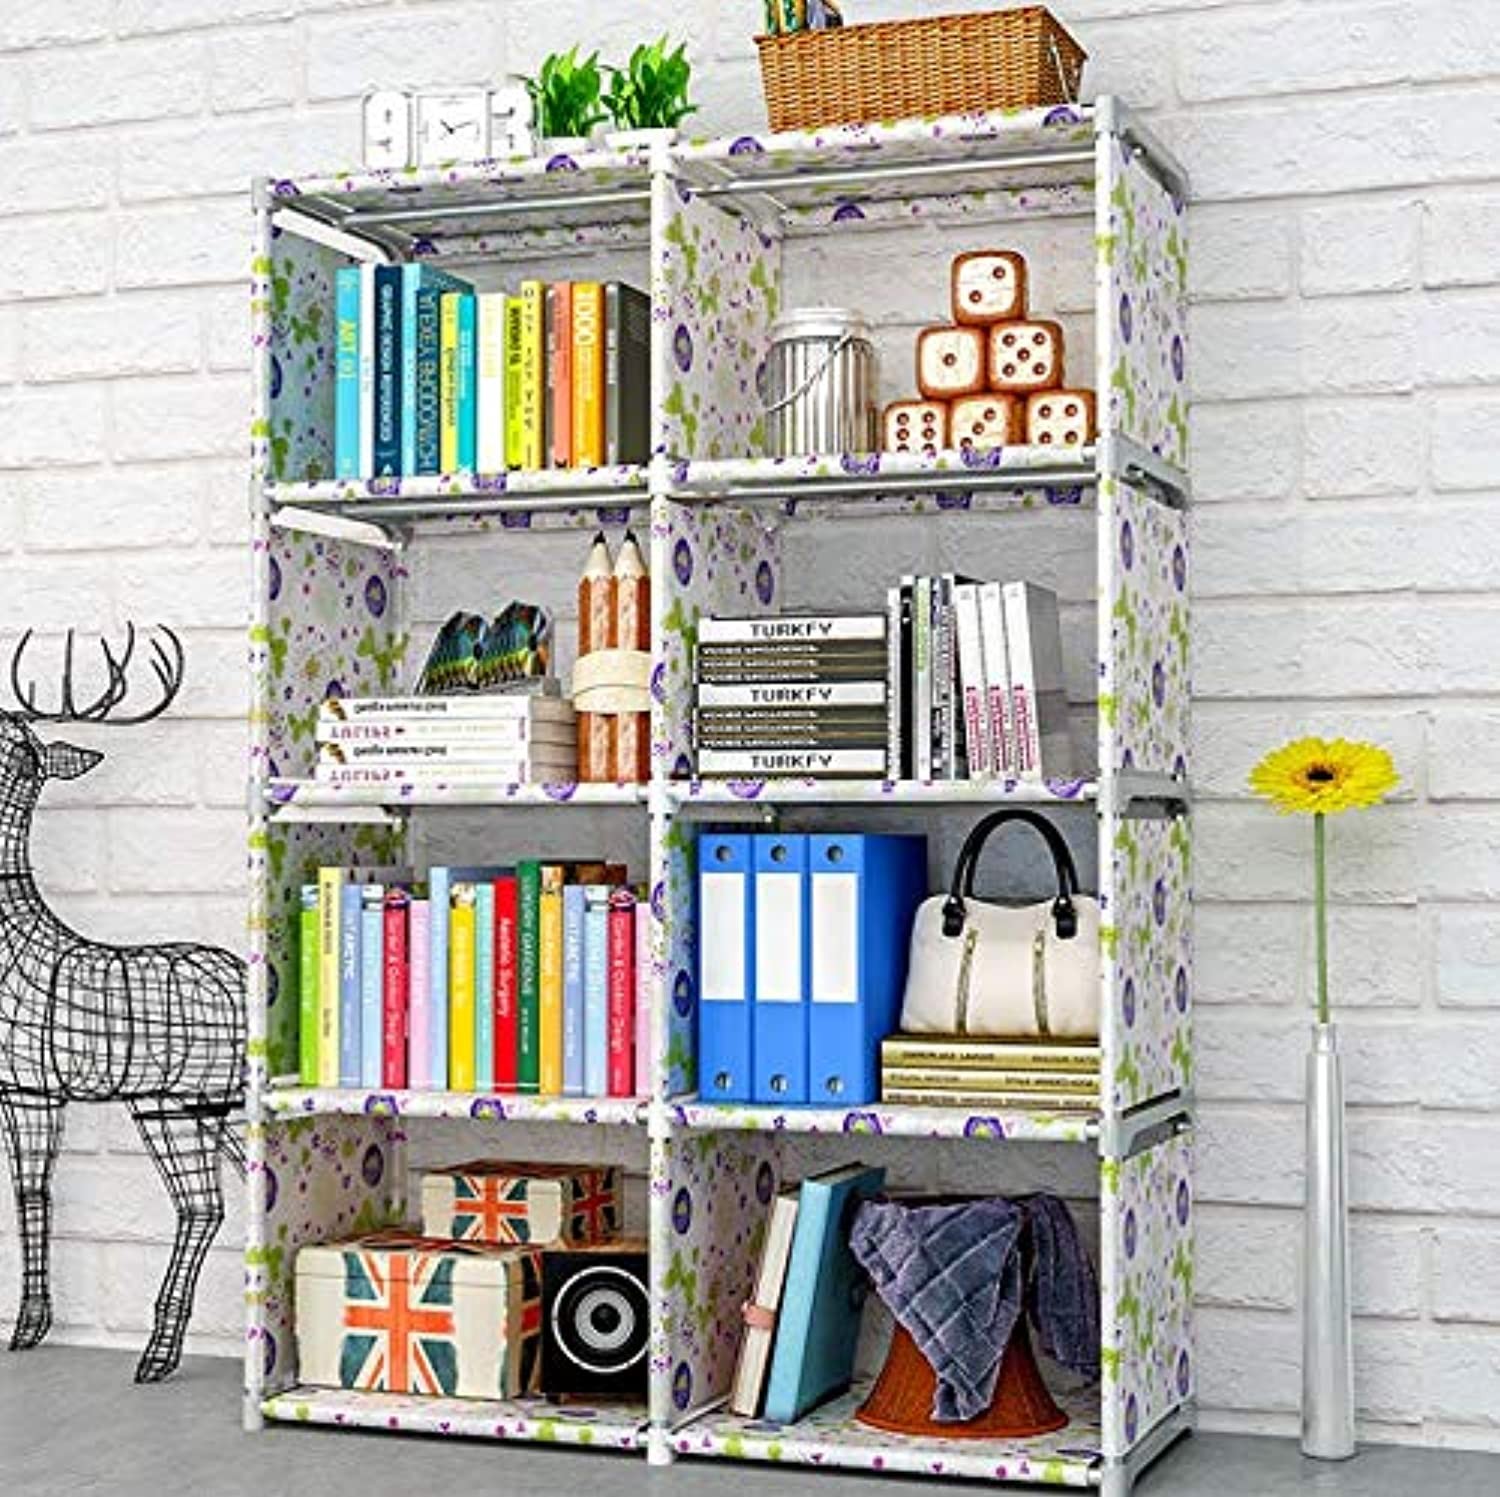 Minimalist Modern Floored Book Shelf Simple Assembled Nonwoven Fabric Student Shelves for Home Fashion DIY Creative Bookshelf,C